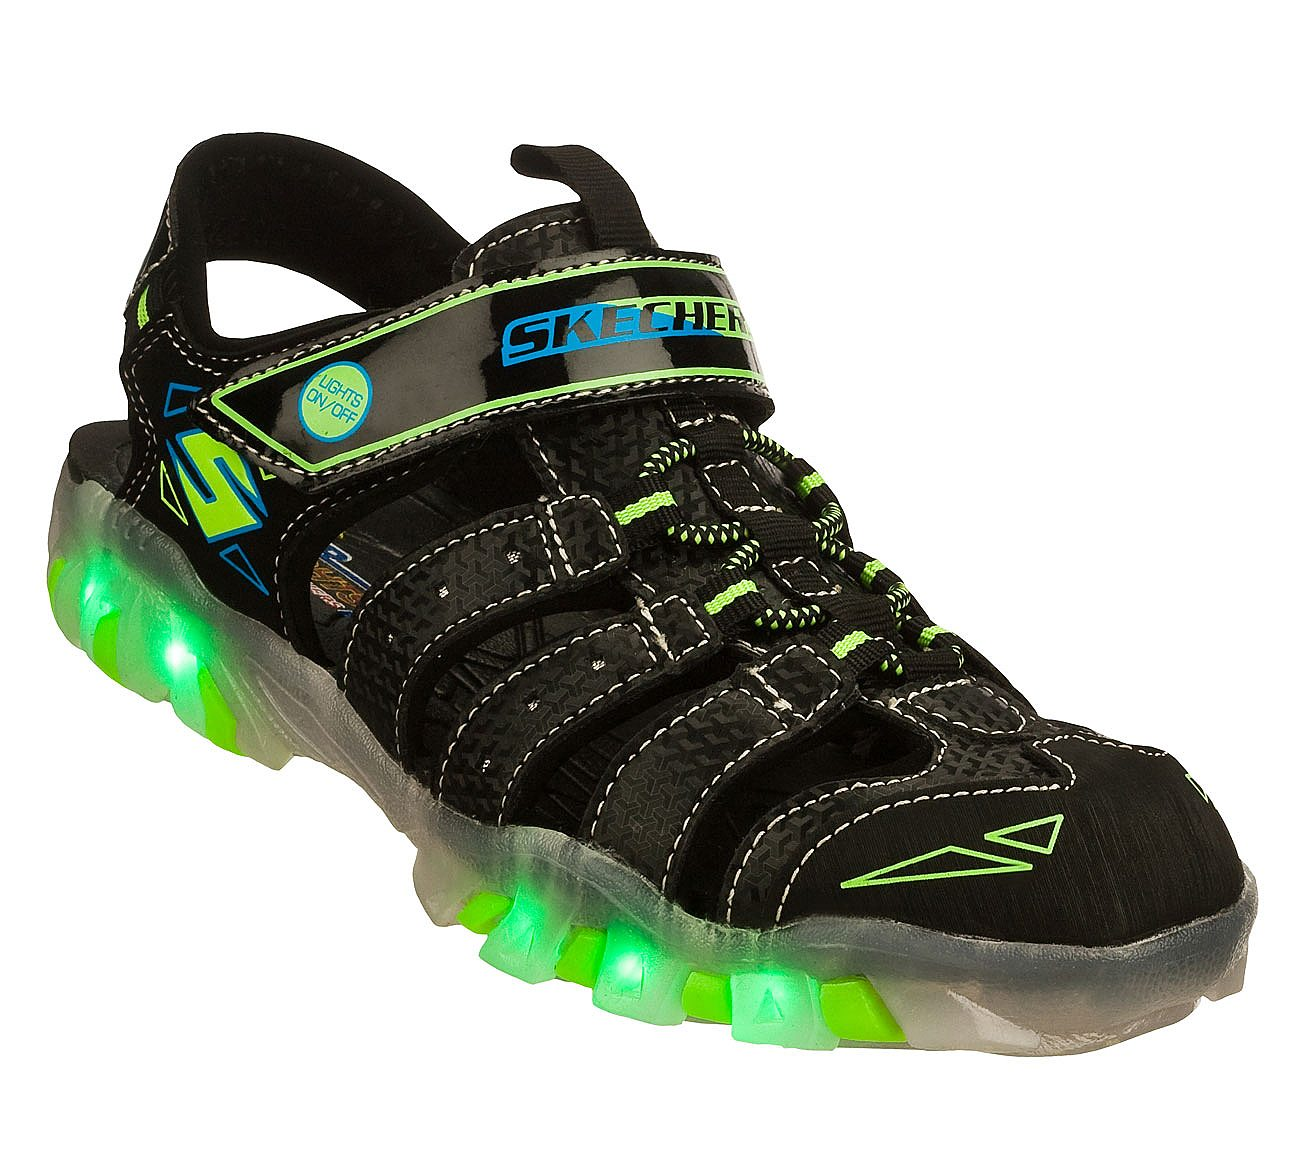 skechers hot lights | eBay